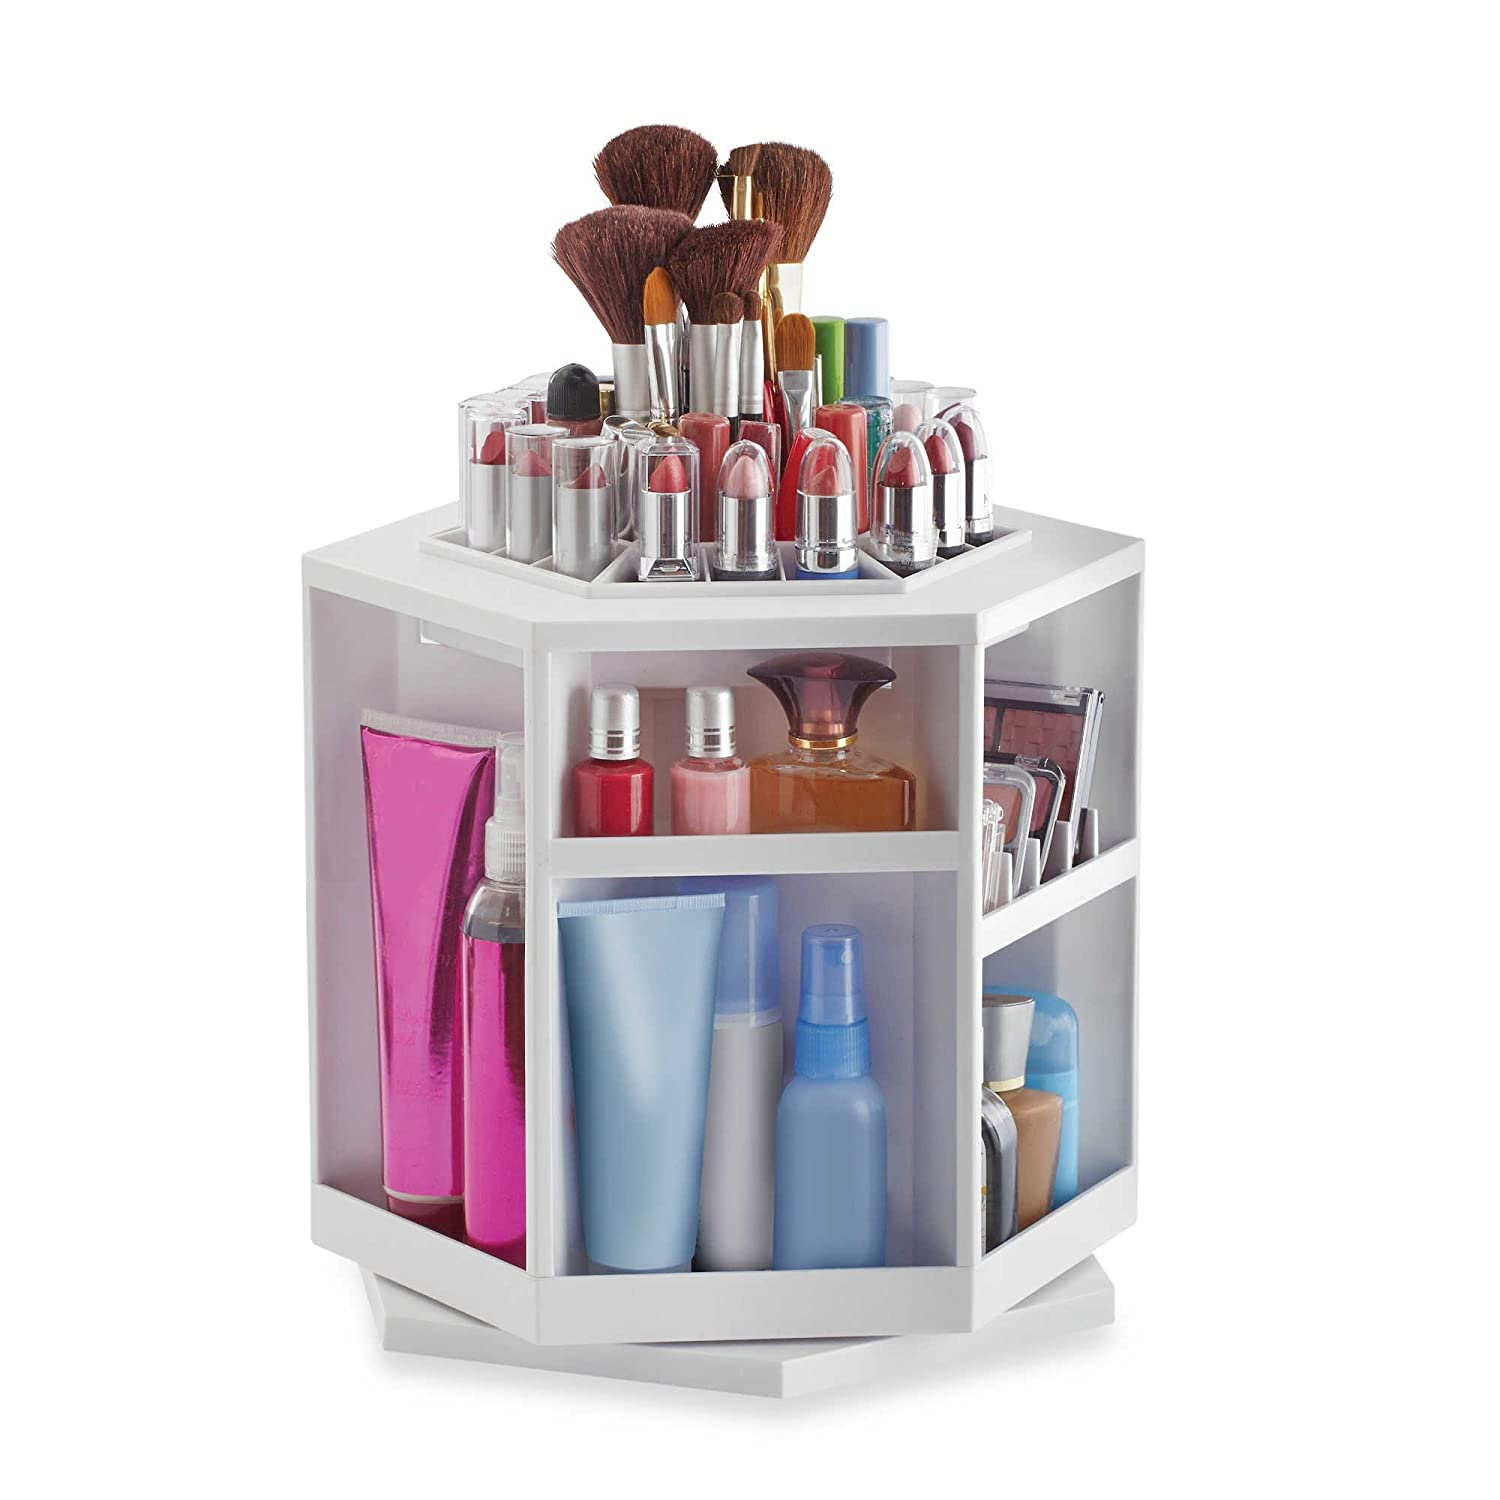 Amazoncom Lori Greiner Spinning Cosmetic Organizer in White Beauty